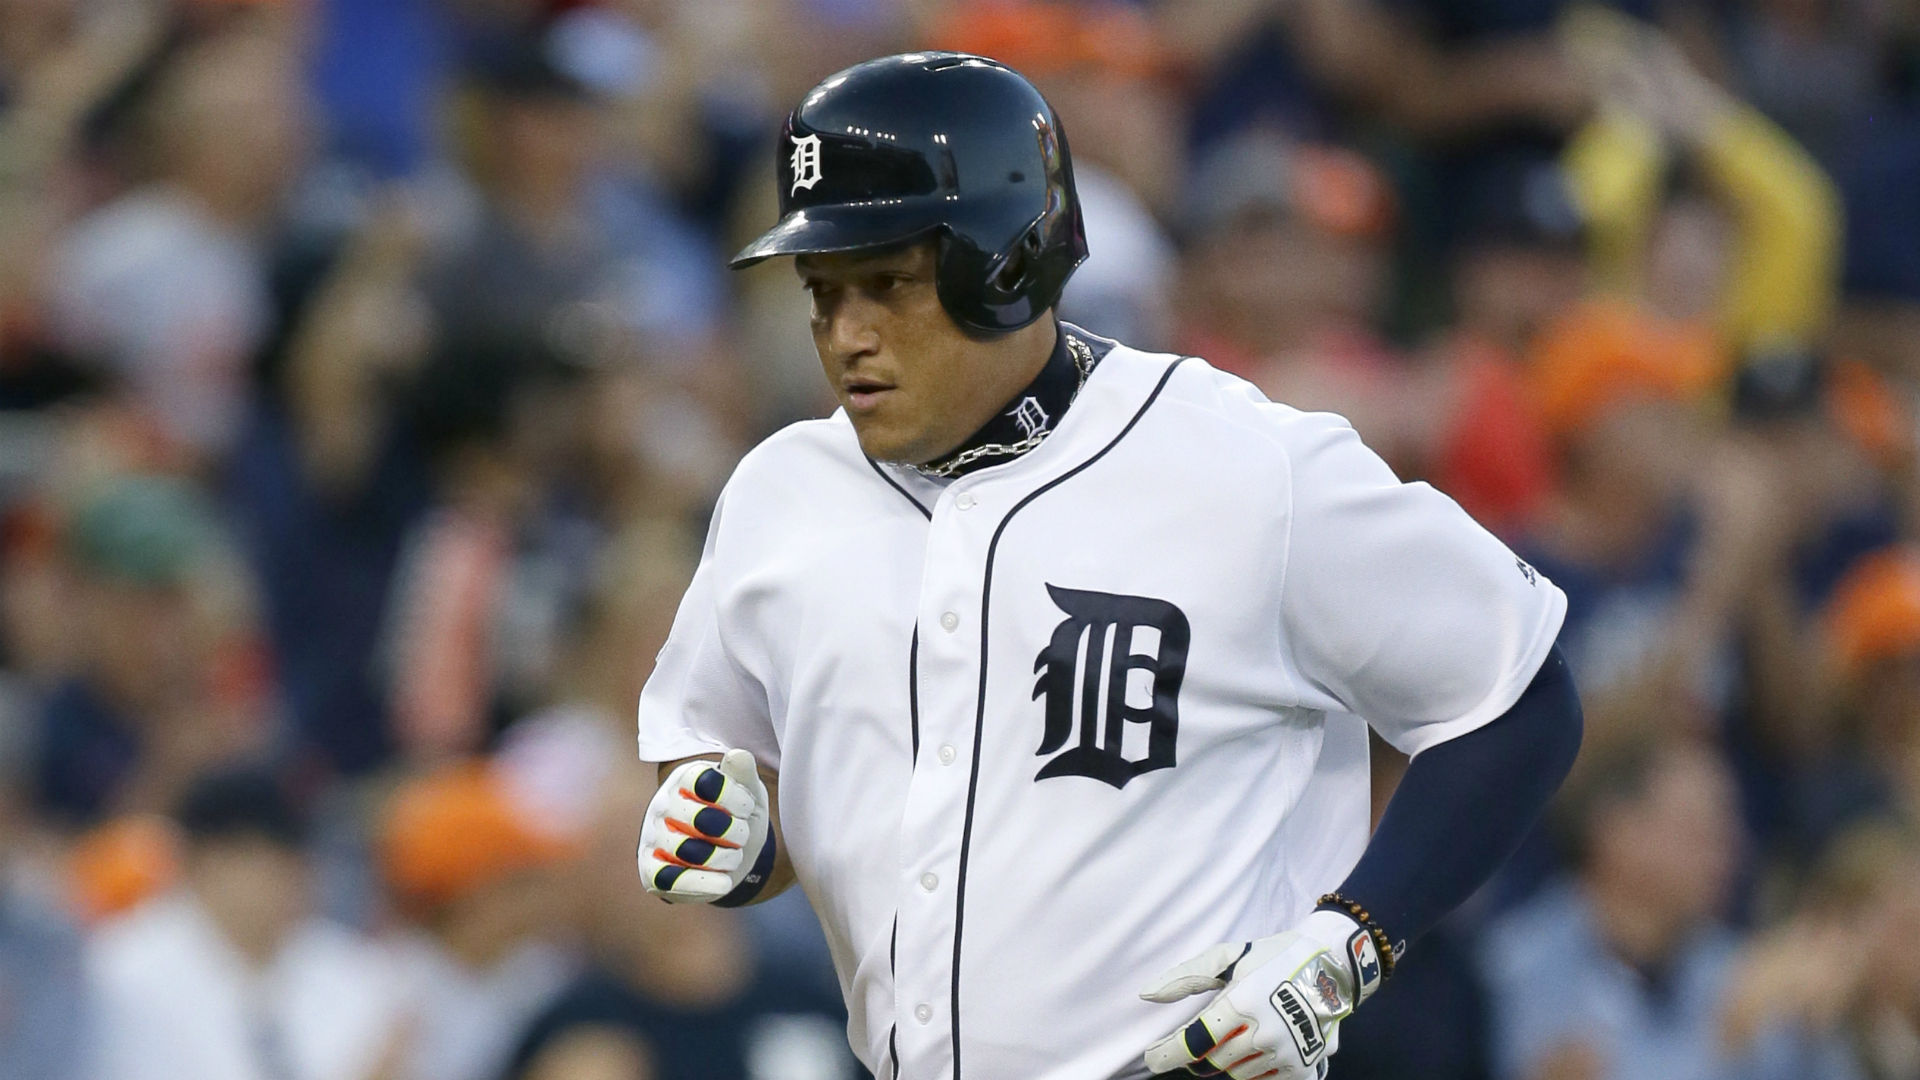 Miguel Cabrera injury update: Detroit star done for season with ruptured biceps tendon